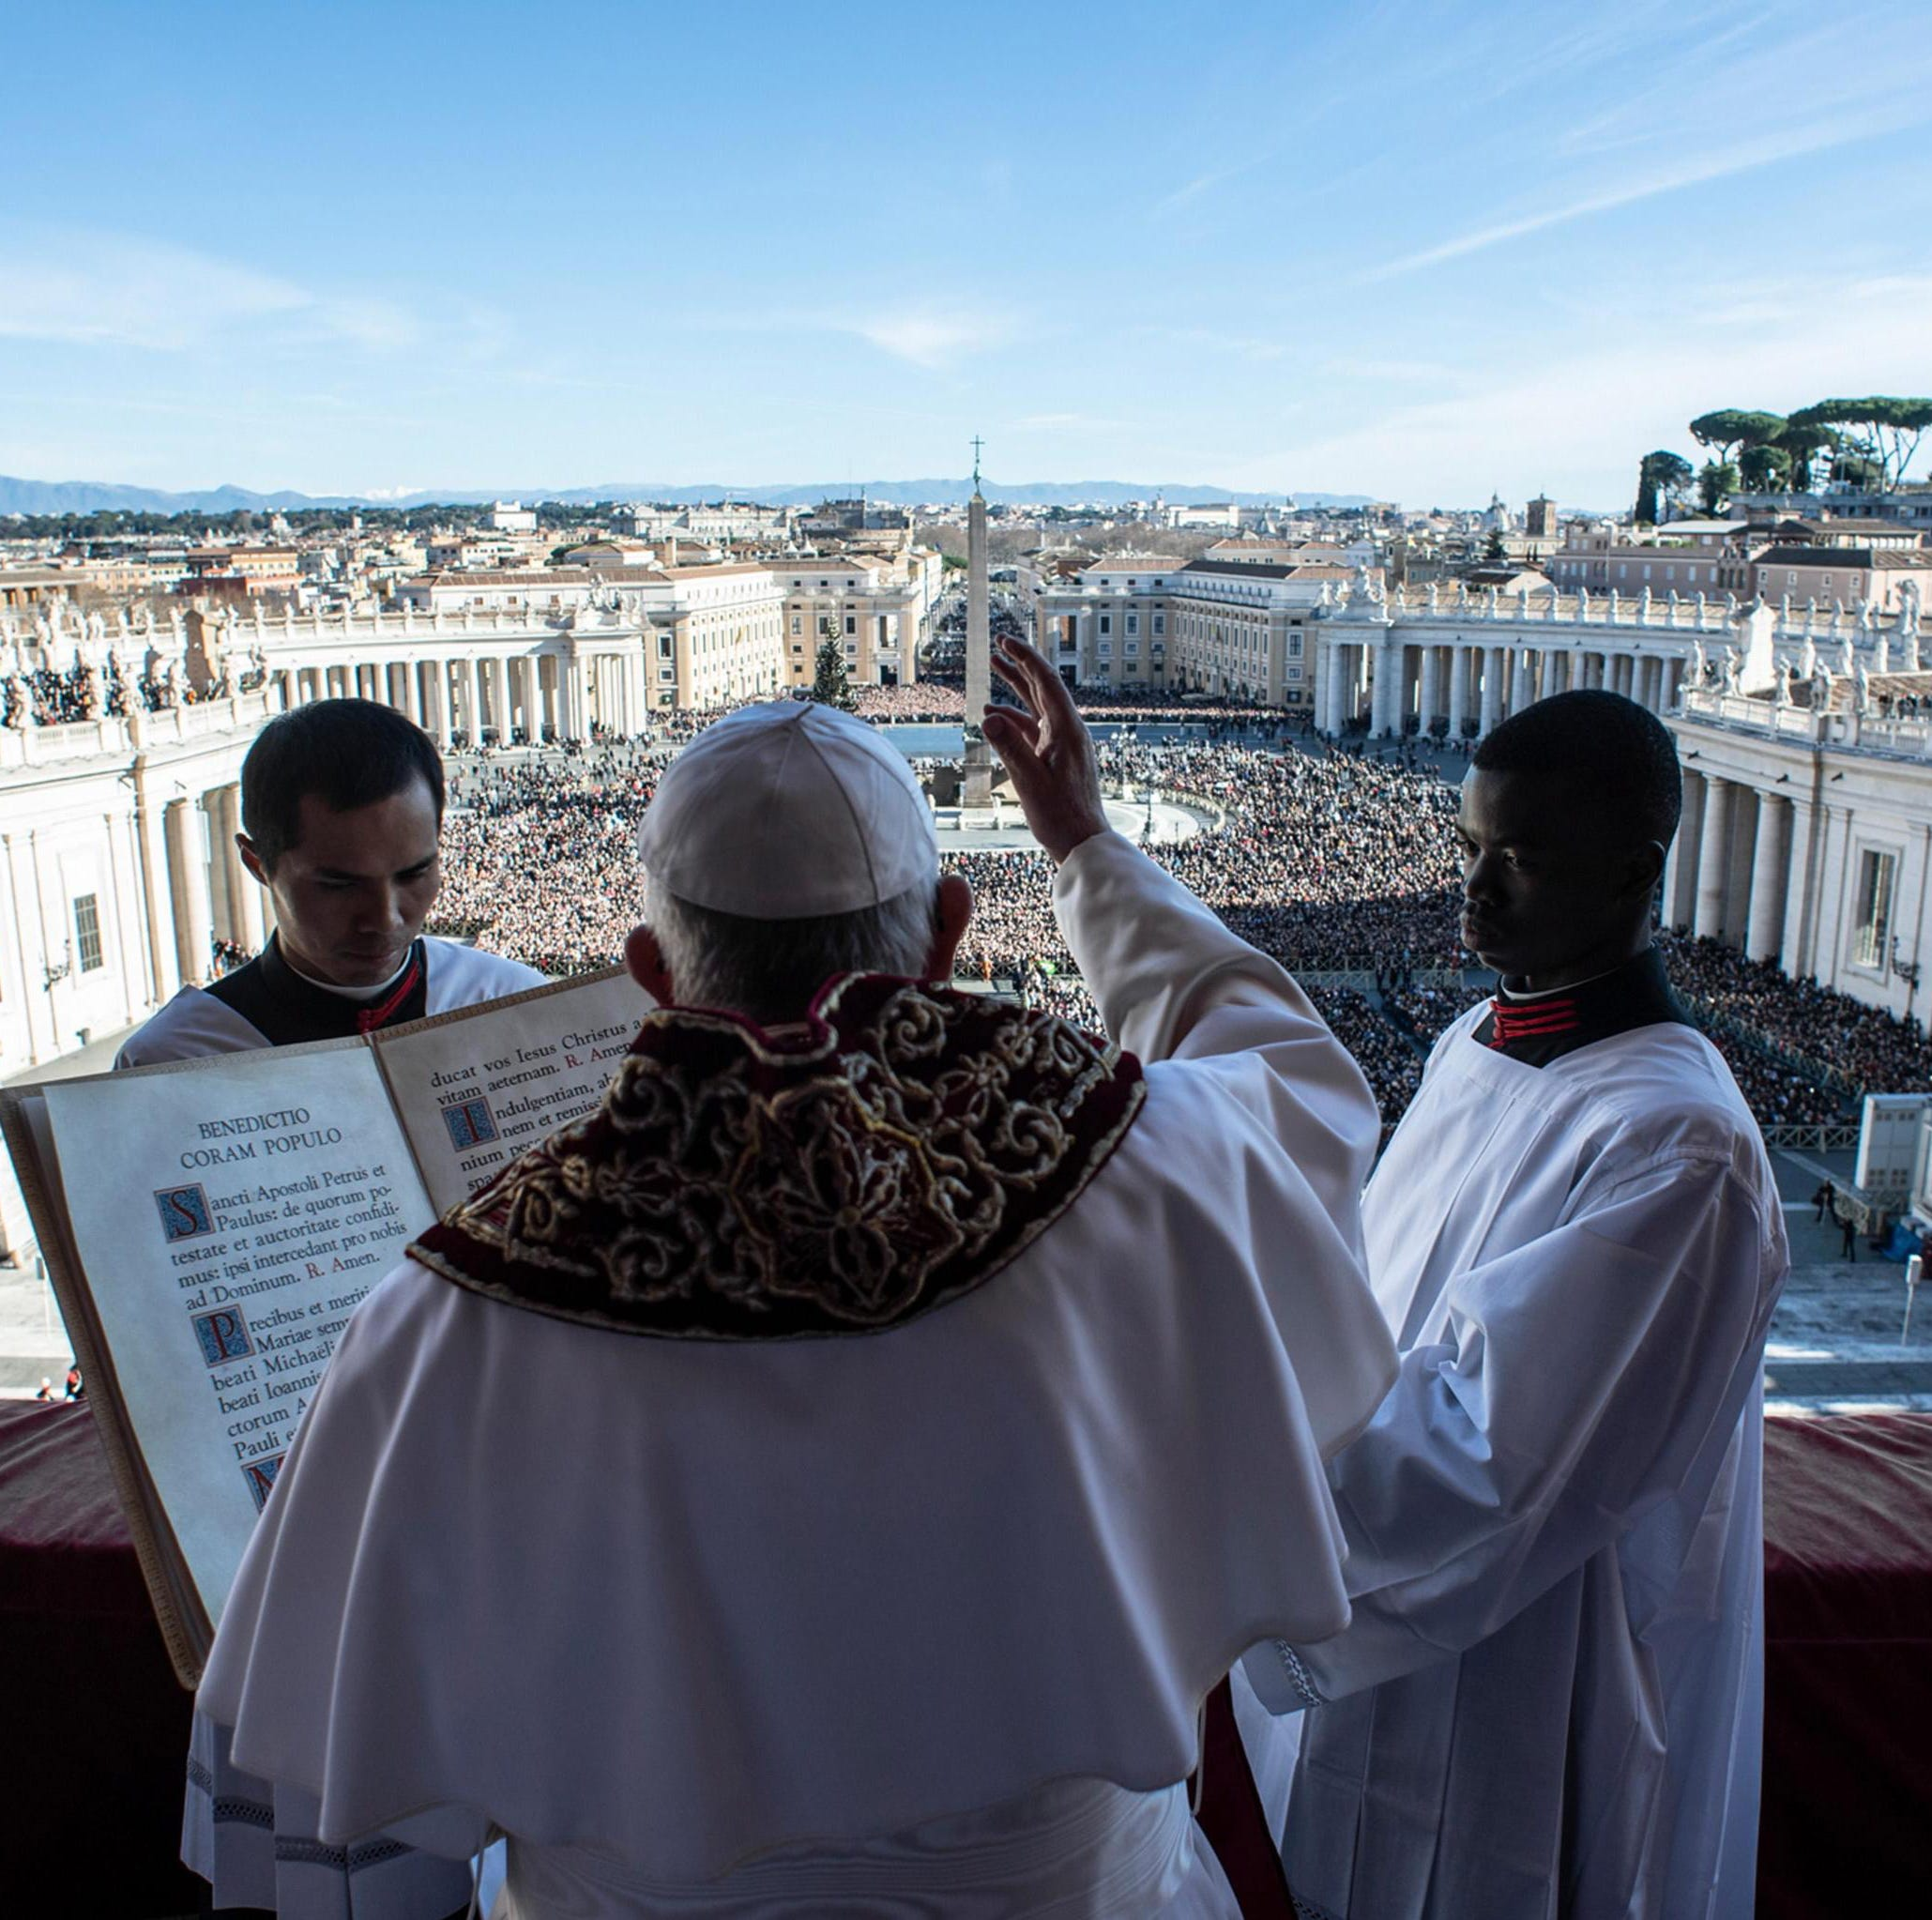 Fathers becoming fathers: The Vatican's secret rules